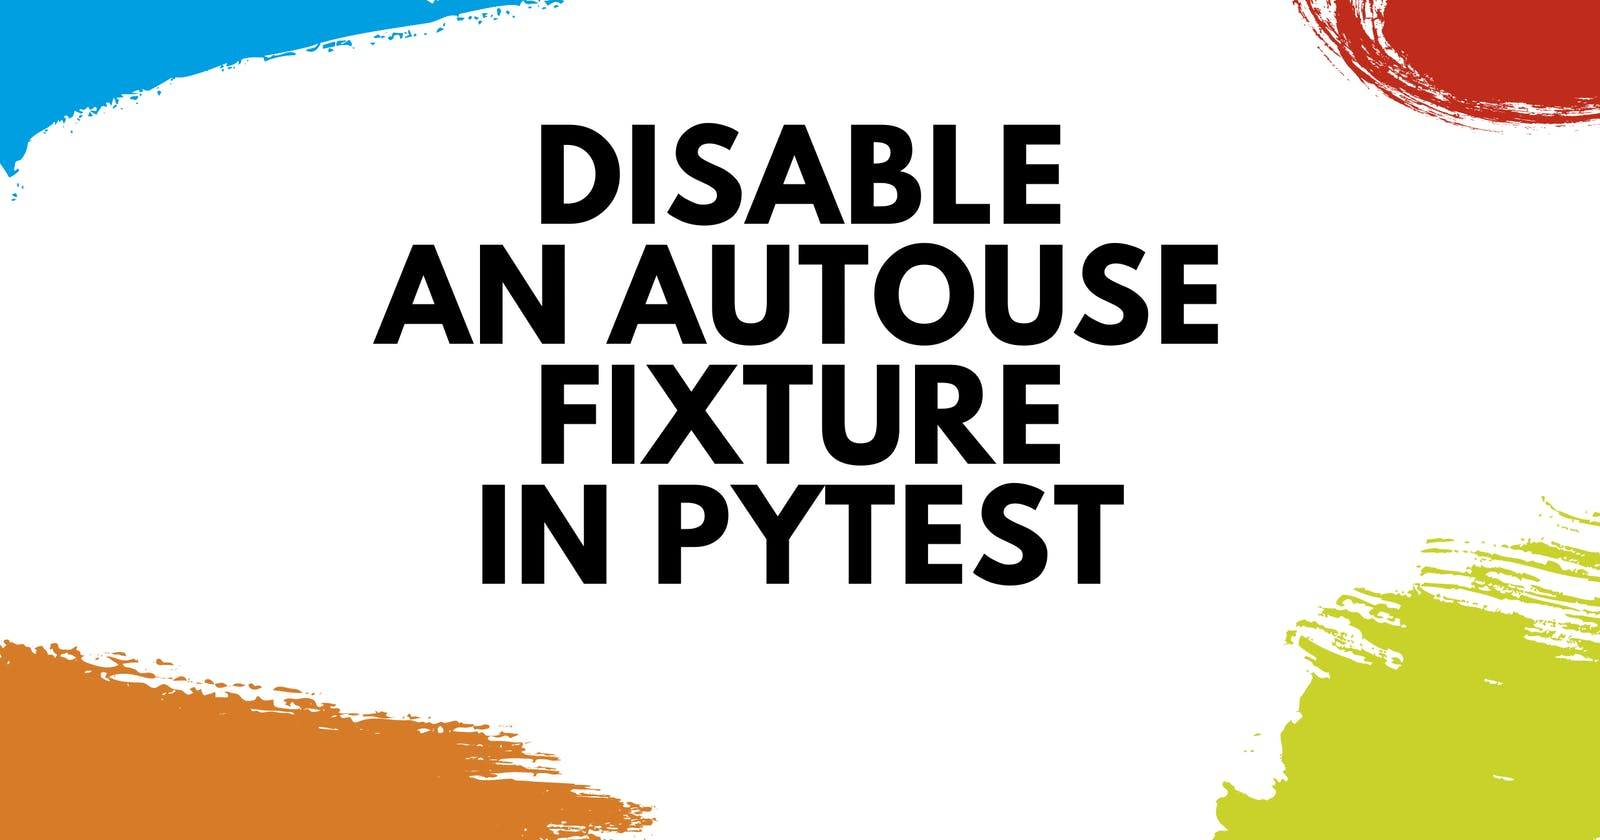 How to Disable Autouse Fixtures in pytest